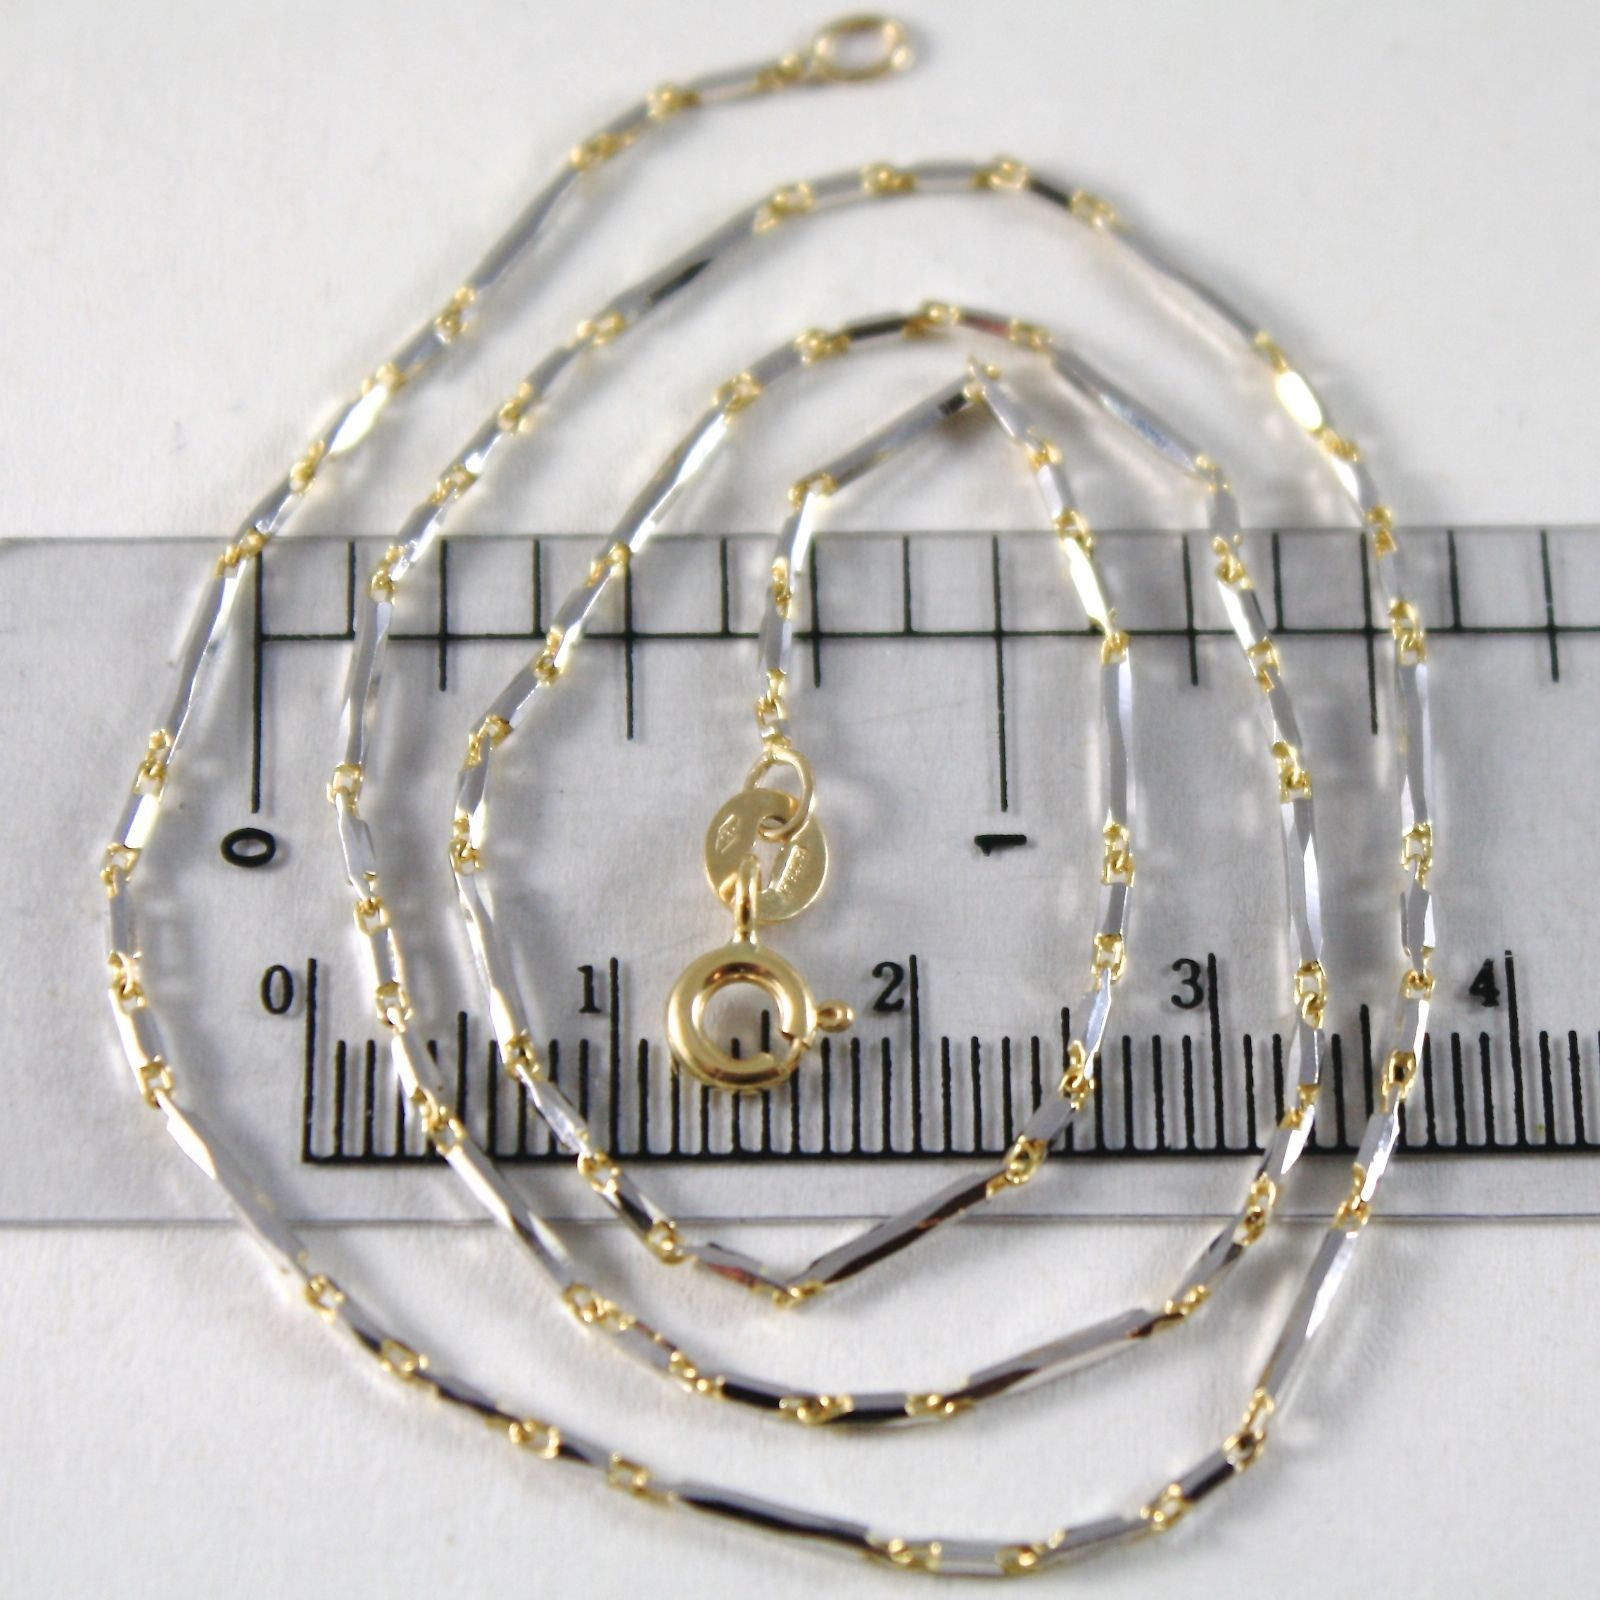 CHAIN CHOKER WHITE GOLD YELLOW 750 18K, 40 CM TUBES ALTERNATING FACETED